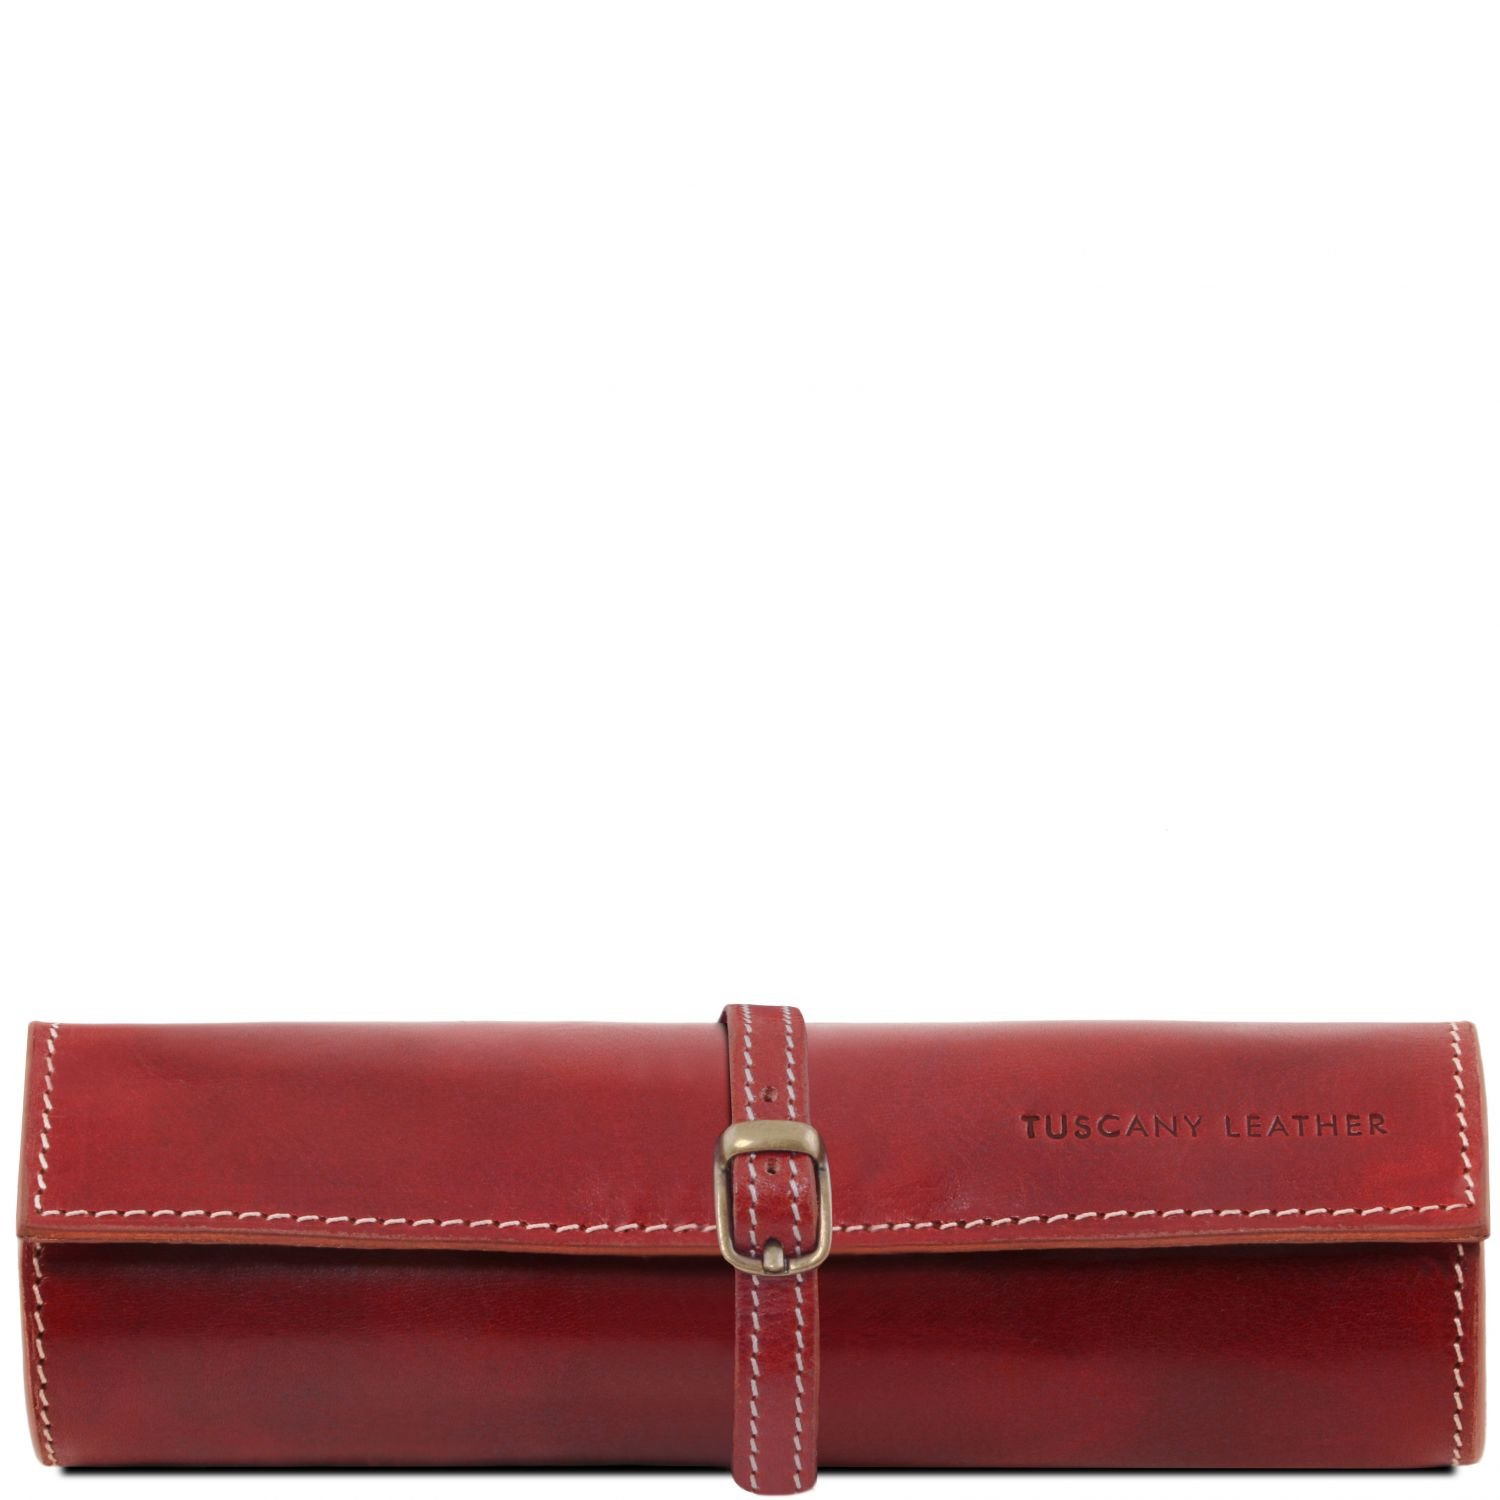 Tuscany Leather Exclusive leather jewellery case Red